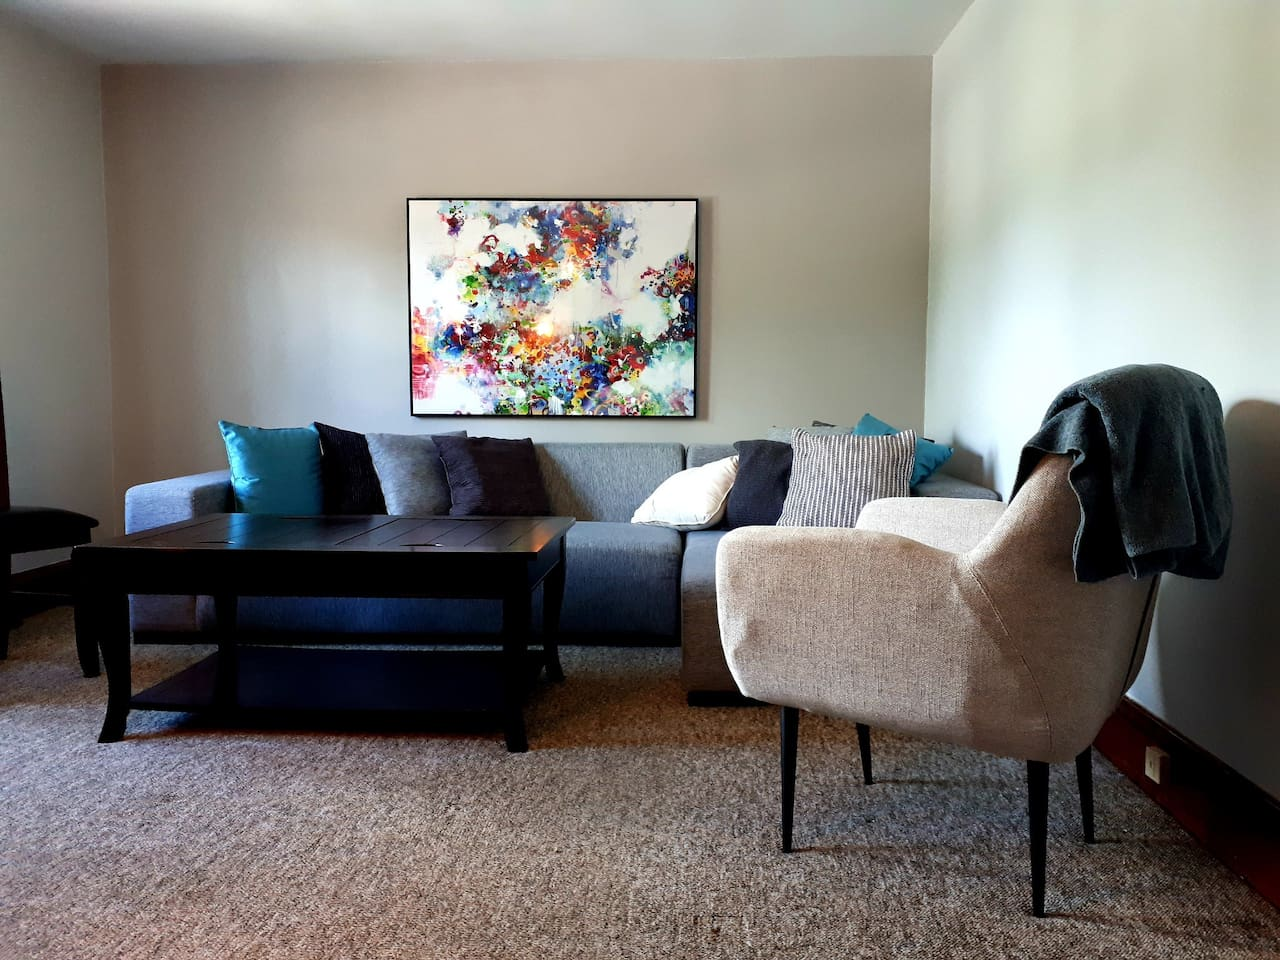 This 2nd floor apartment has clean cushy carpets in the living room to keep your feet cozy, on a warm note there is hot water heating in winter.